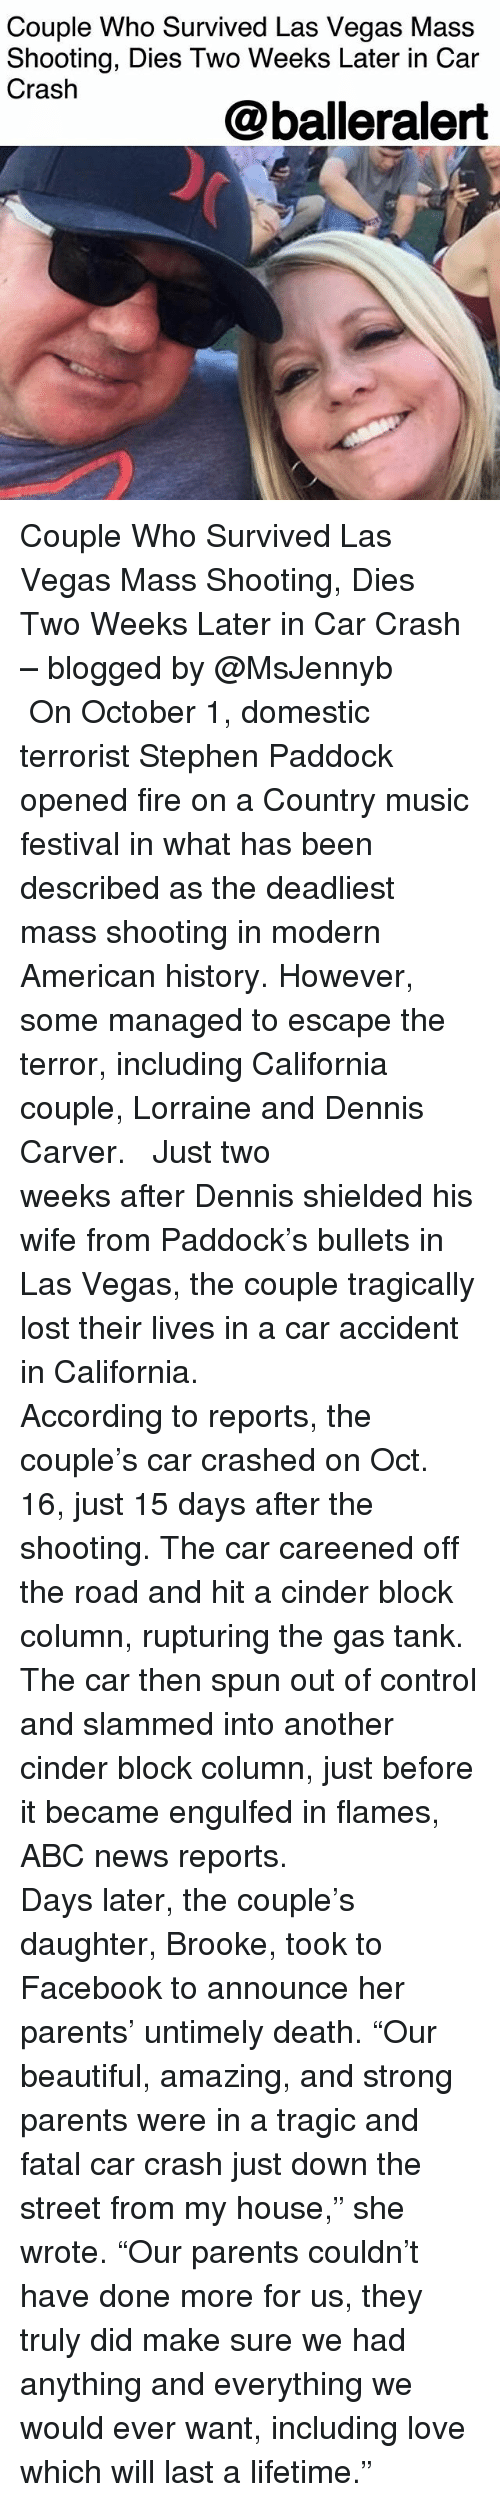 "Abc, Beautiful, and Facebook: Couple Who Survived Las Vegas Mass  Shooting, Dies Two Weeks Later in Car  Crash  @balleralert Couple Who Survived Las Vegas Mass Shooting, Dies Two Weeks Later in Car Crash – blogged by @MsJennyb ⠀⠀⠀⠀⠀⠀⠀ ⠀⠀⠀⠀⠀⠀⠀ On October 1, domestic terrorist Stephen Paddock opened fire on a Country music festival in what has been described as the deadliest mass shooting in modern American history. However, some managed to escape the terror, including California couple, Lorraine and Dennis Carver. ⠀⠀⠀⠀⠀⠀⠀ ⠀⠀⠀⠀⠀⠀⠀ Just two weeks after Dennis shielded his wife from Paddock's bullets in Las Vegas, the couple tragically lost their lives in a car accident in California. ⠀⠀⠀⠀⠀⠀⠀ ⠀⠀⠀⠀⠀⠀⠀ According to reports, the couple's car crashed on Oct. 16, just 15 days after the shooting. The car careened off the road and hit a cinder block column, rupturing the gas tank. The car then spun out of control and slammed into another cinder block column, just before it became engulfed in flames, ABC news reports. ⠀⠀⠀⠀⠀⠀⠀ ⠀⠀⠀⠀⠀⠀⠀ Days later, the couple's daughter, Brooke, took to Facebook to announce her parents' untimely death. ""Our beautiful, amazing, and strong parents were in a tragic and fatal car crash just down the street from my house,"" she wrote. ""Our parents couldn't have done more for us, they truly did make sure we had anything and everything we would ever want, including love which will last a lifetime."""